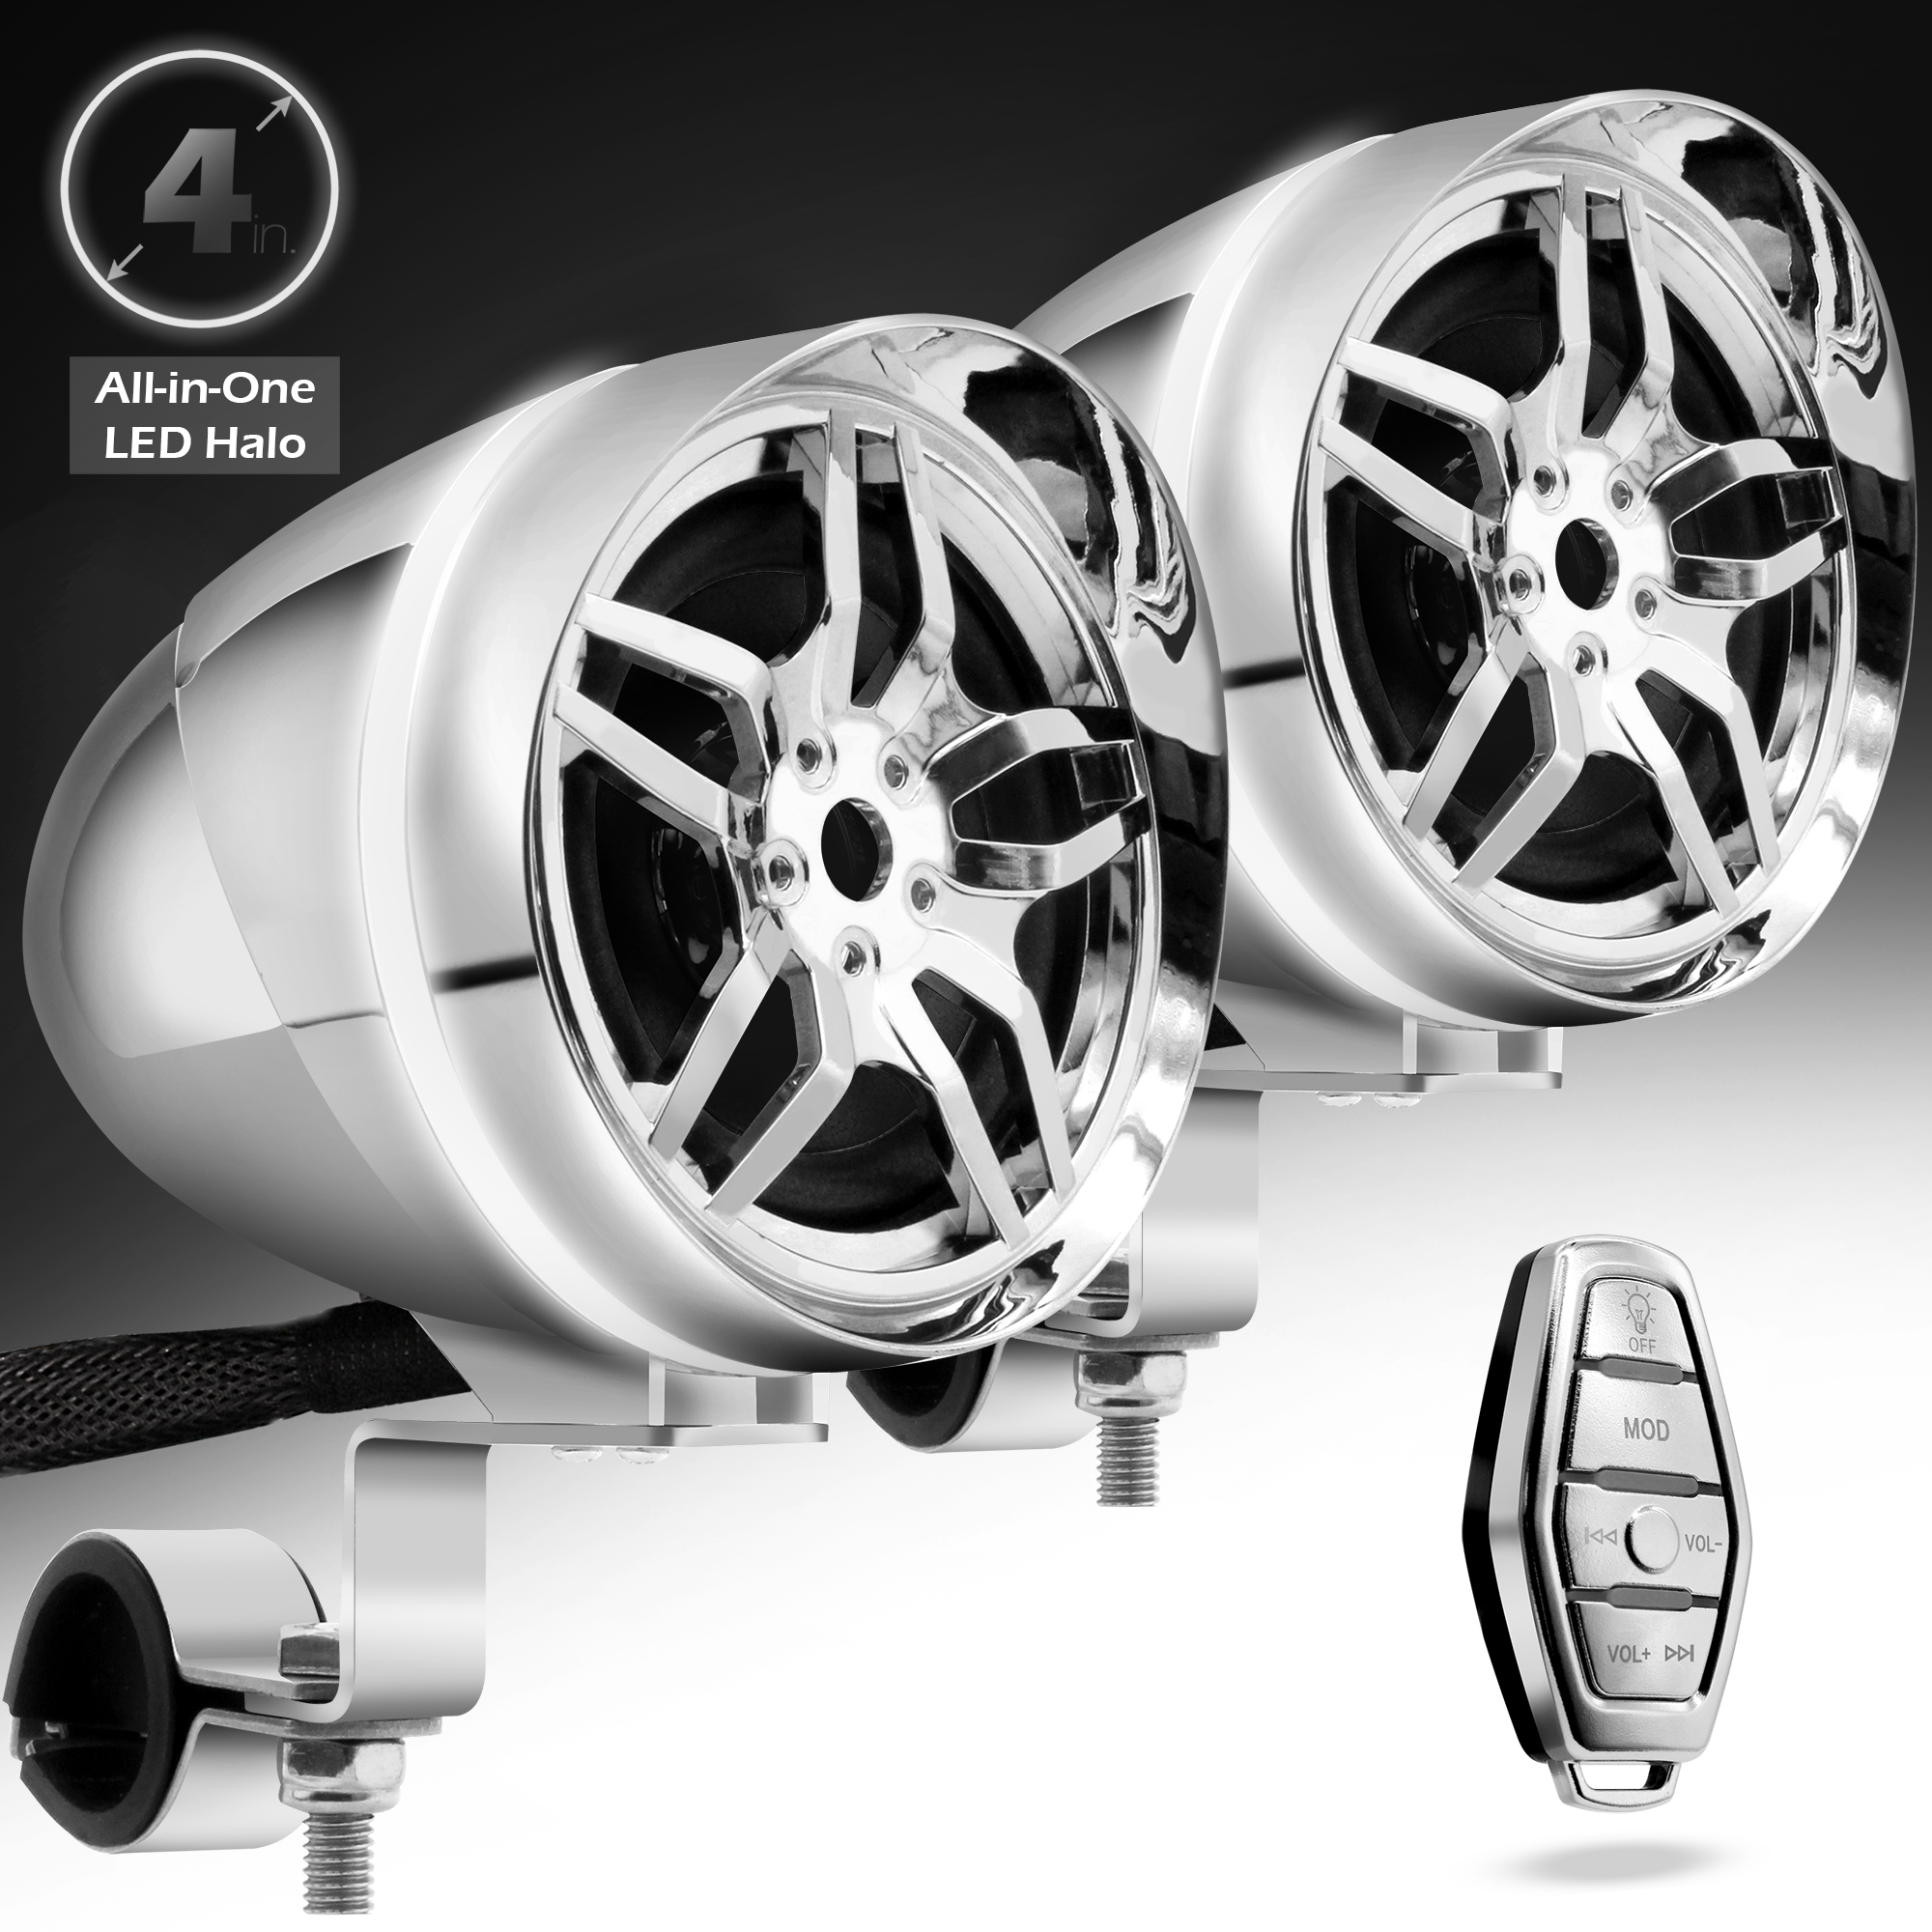 All-in-One Bluetooth Motorcycle Stereo Speakers (Chrome)